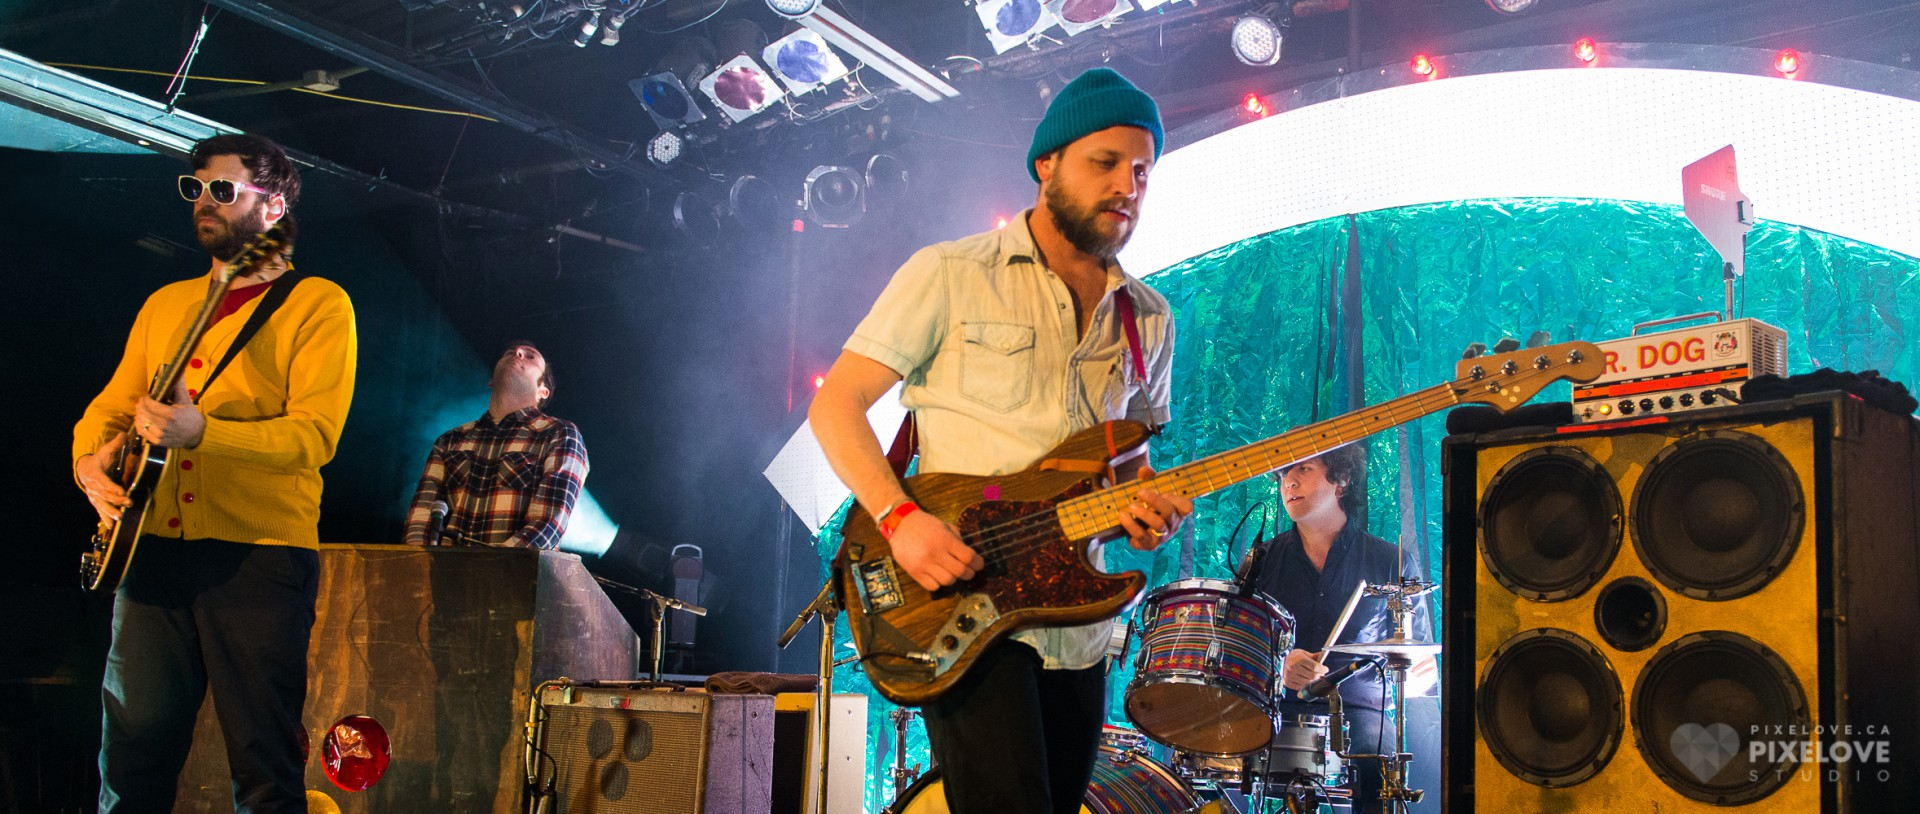 Dr. Dog + Saint Rich performed at Cabaret du Mile End in Montreal on January 29 2014.